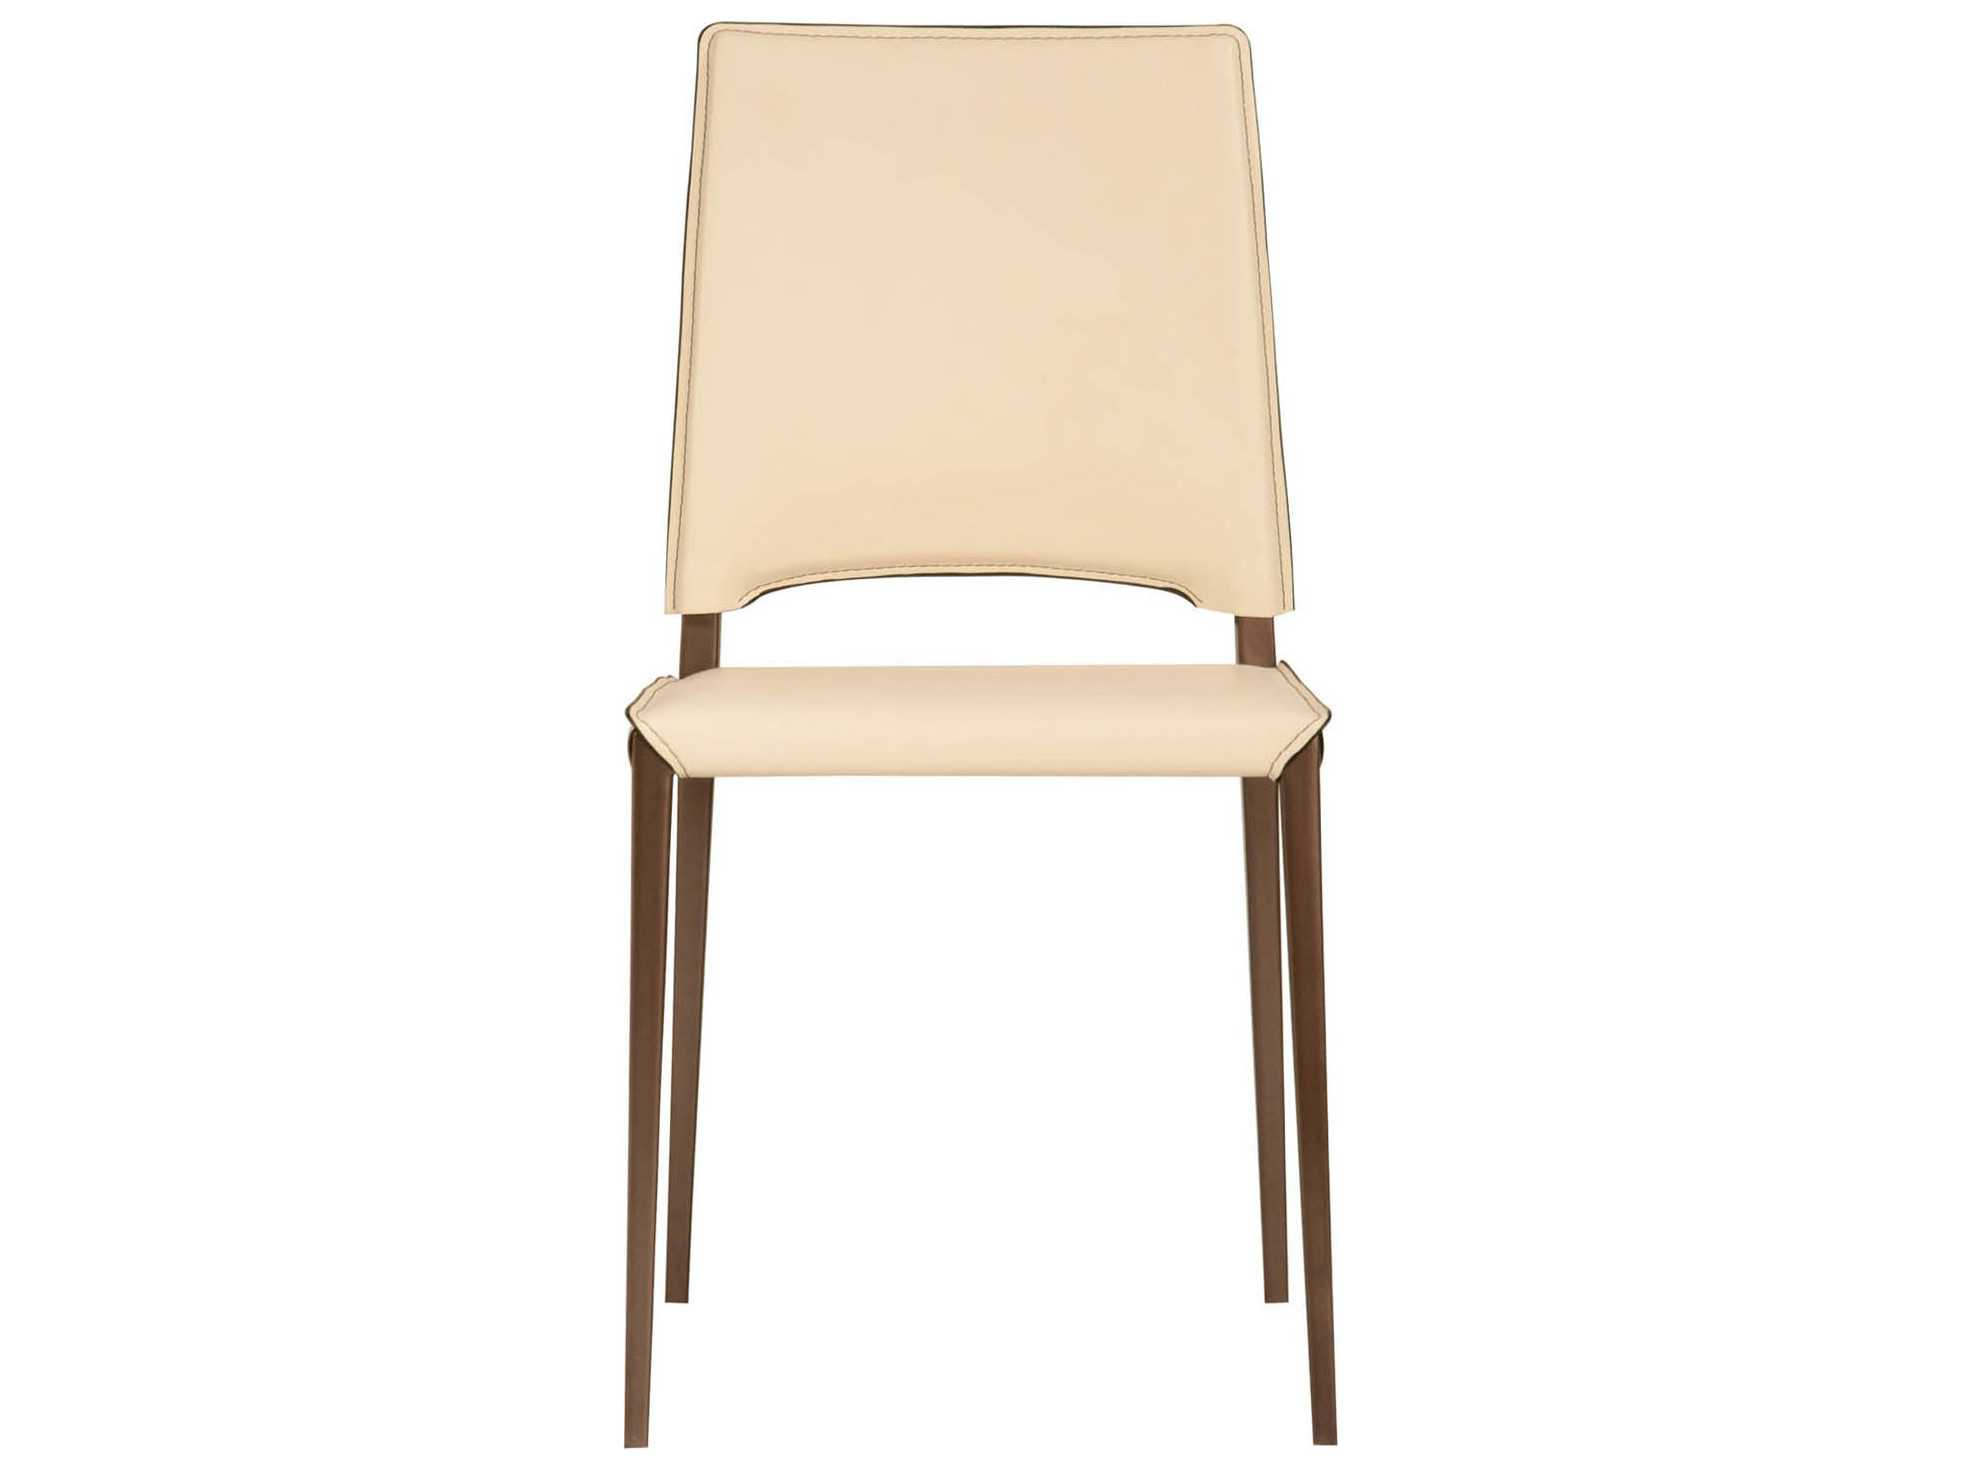 Star International Furniture Ritz Lola Cream Bonded Leather Set Of 2 Dining Side Chairs With